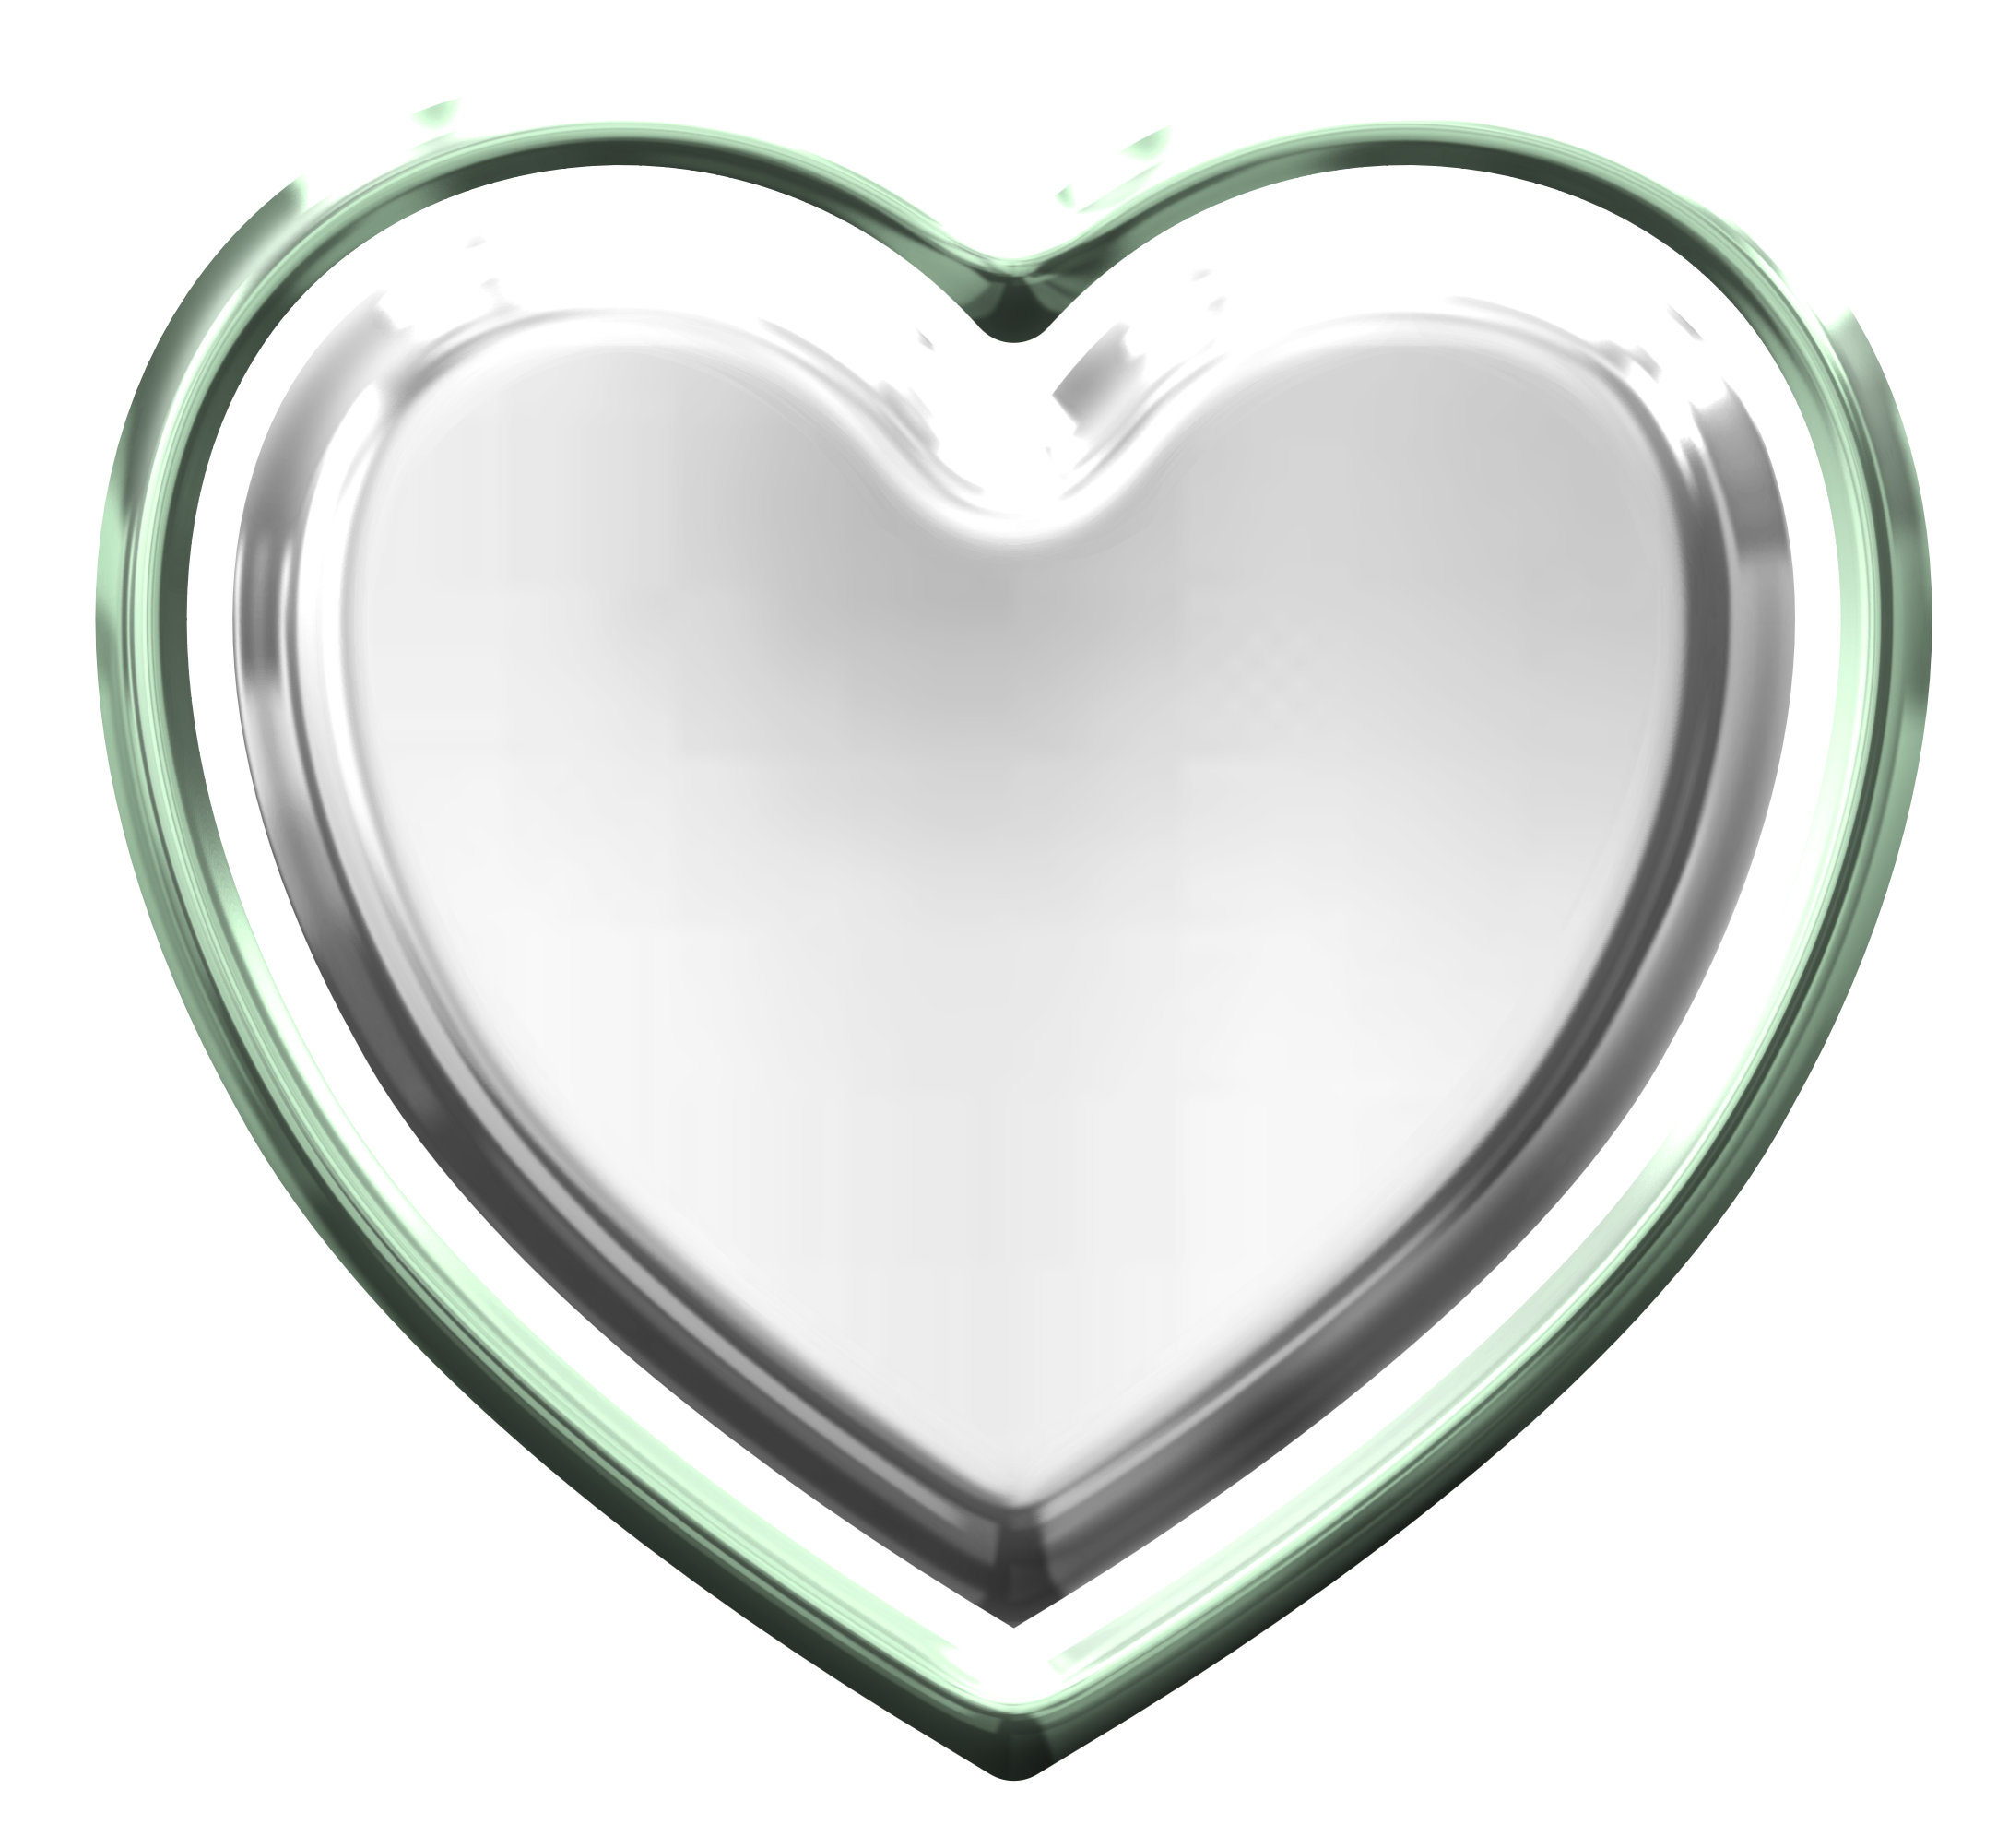 Heart, png silver. Heart image purepng free